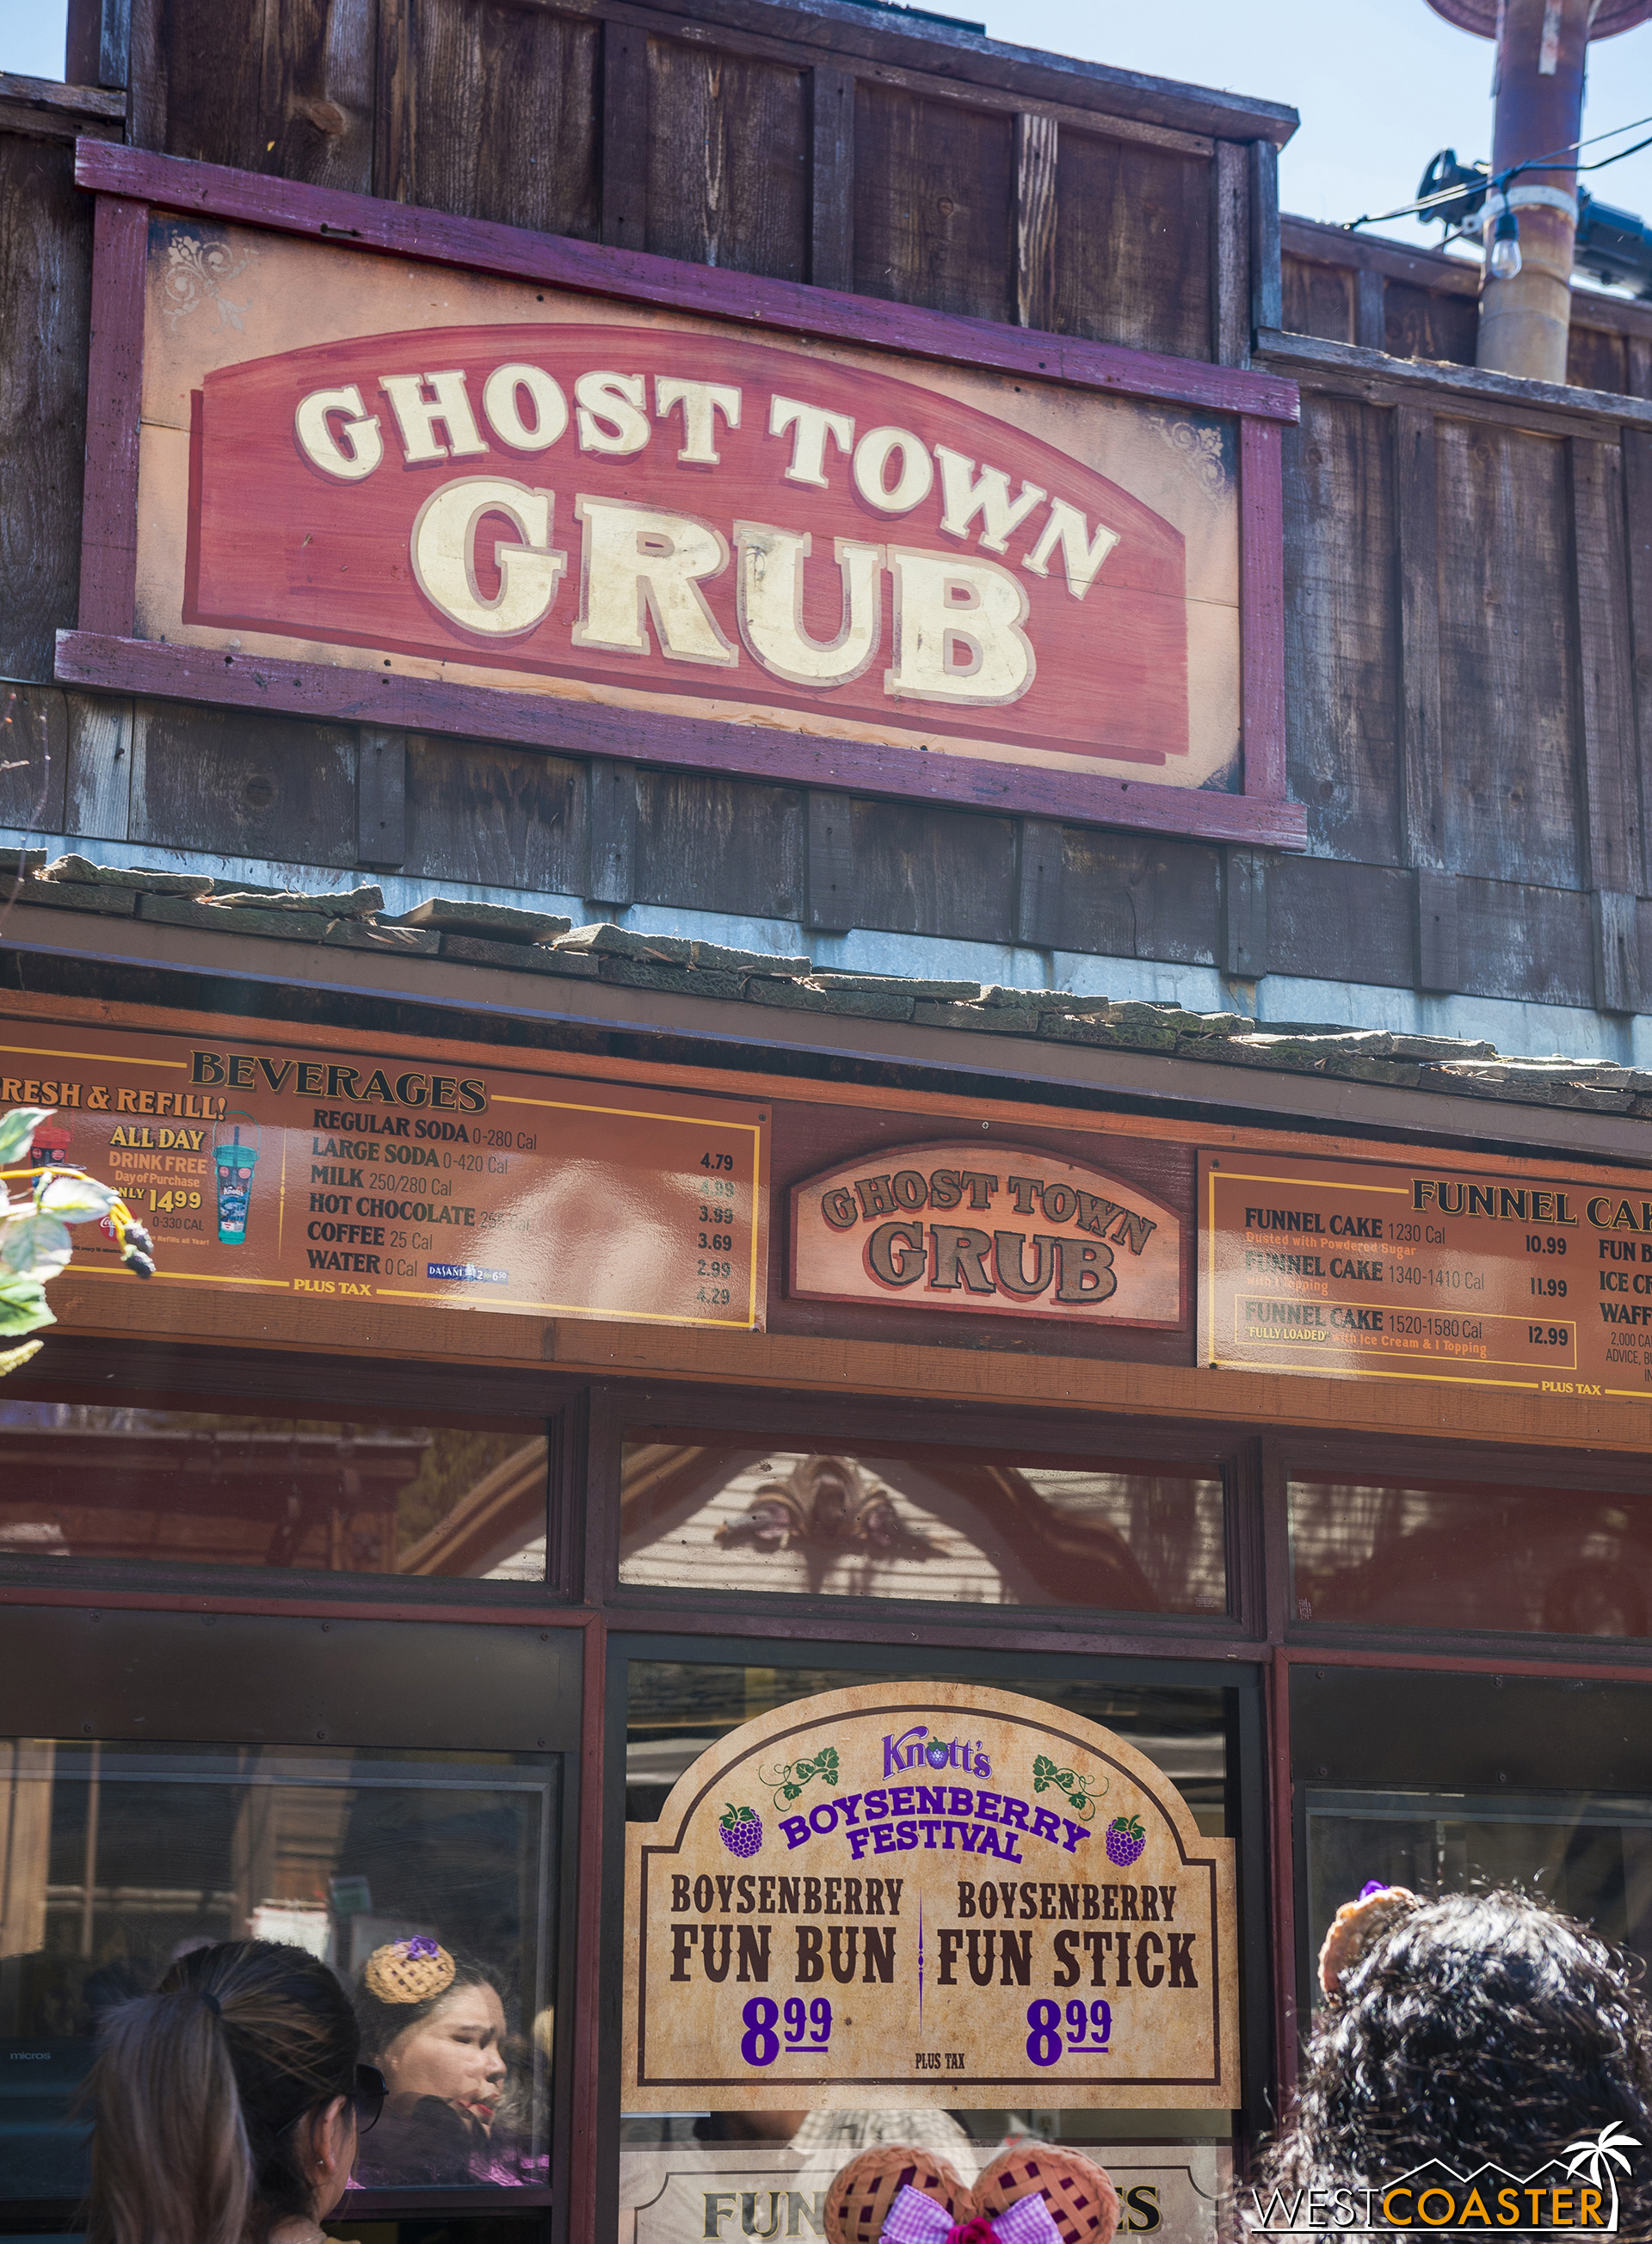 You can still get a Fun Bun or Fun Stick at Ghost Town Grub, beside's Goldie's Place.